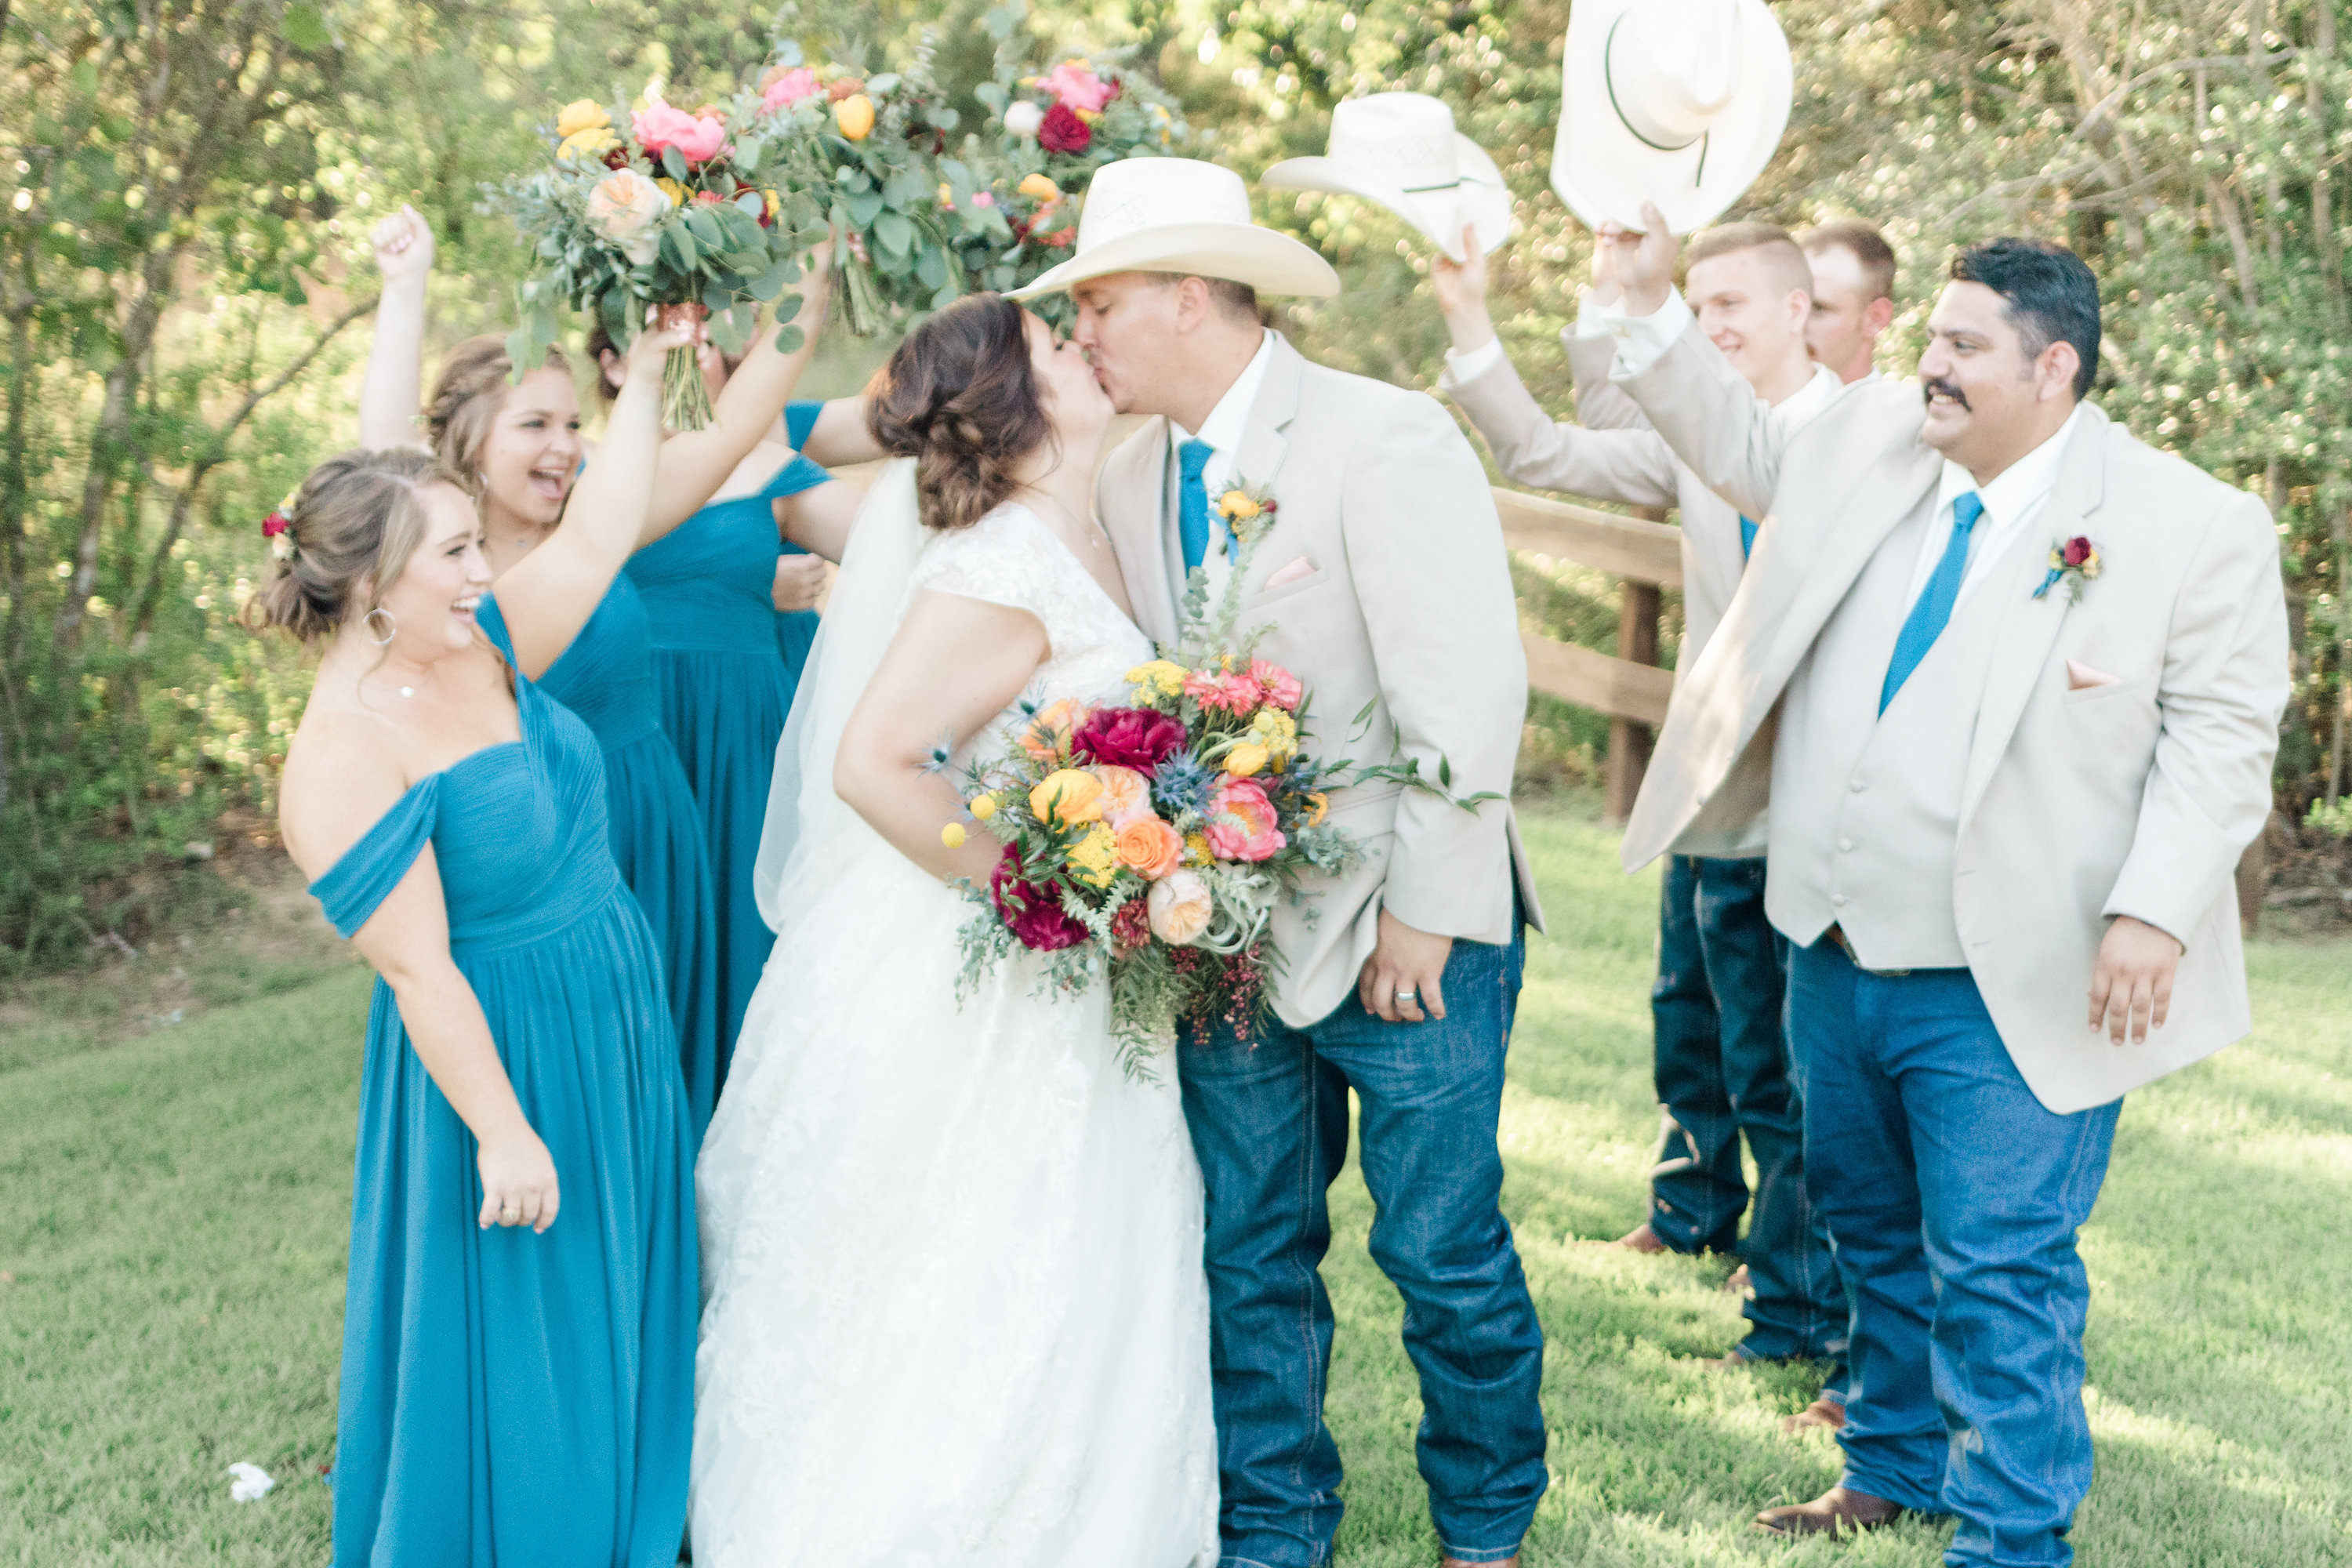 Wesley-Wedding-Ten23-Photography-631